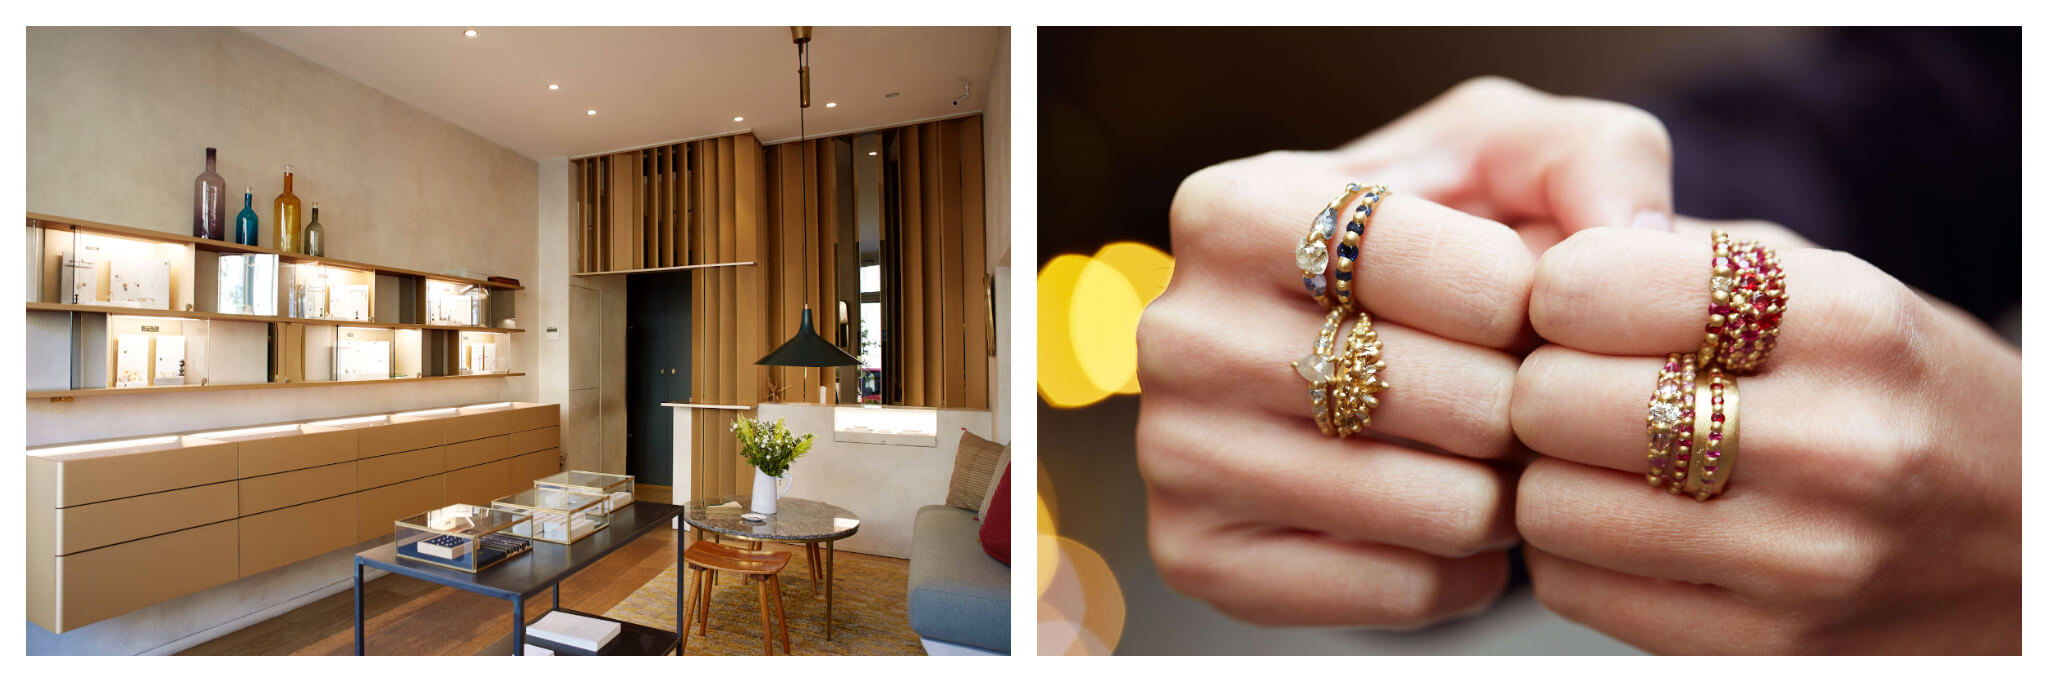 "On left: At White Bird, with three Paris locations, shoppers can peruse the polished displays for an international curation of jewelry by independent designers. On right: Multi-colored and dotted with diamonds, the gold rings designed by Polly Wales put the ""statement"" in statement jewelry. Her collection is available at White Bird, which has three locations in Paris."